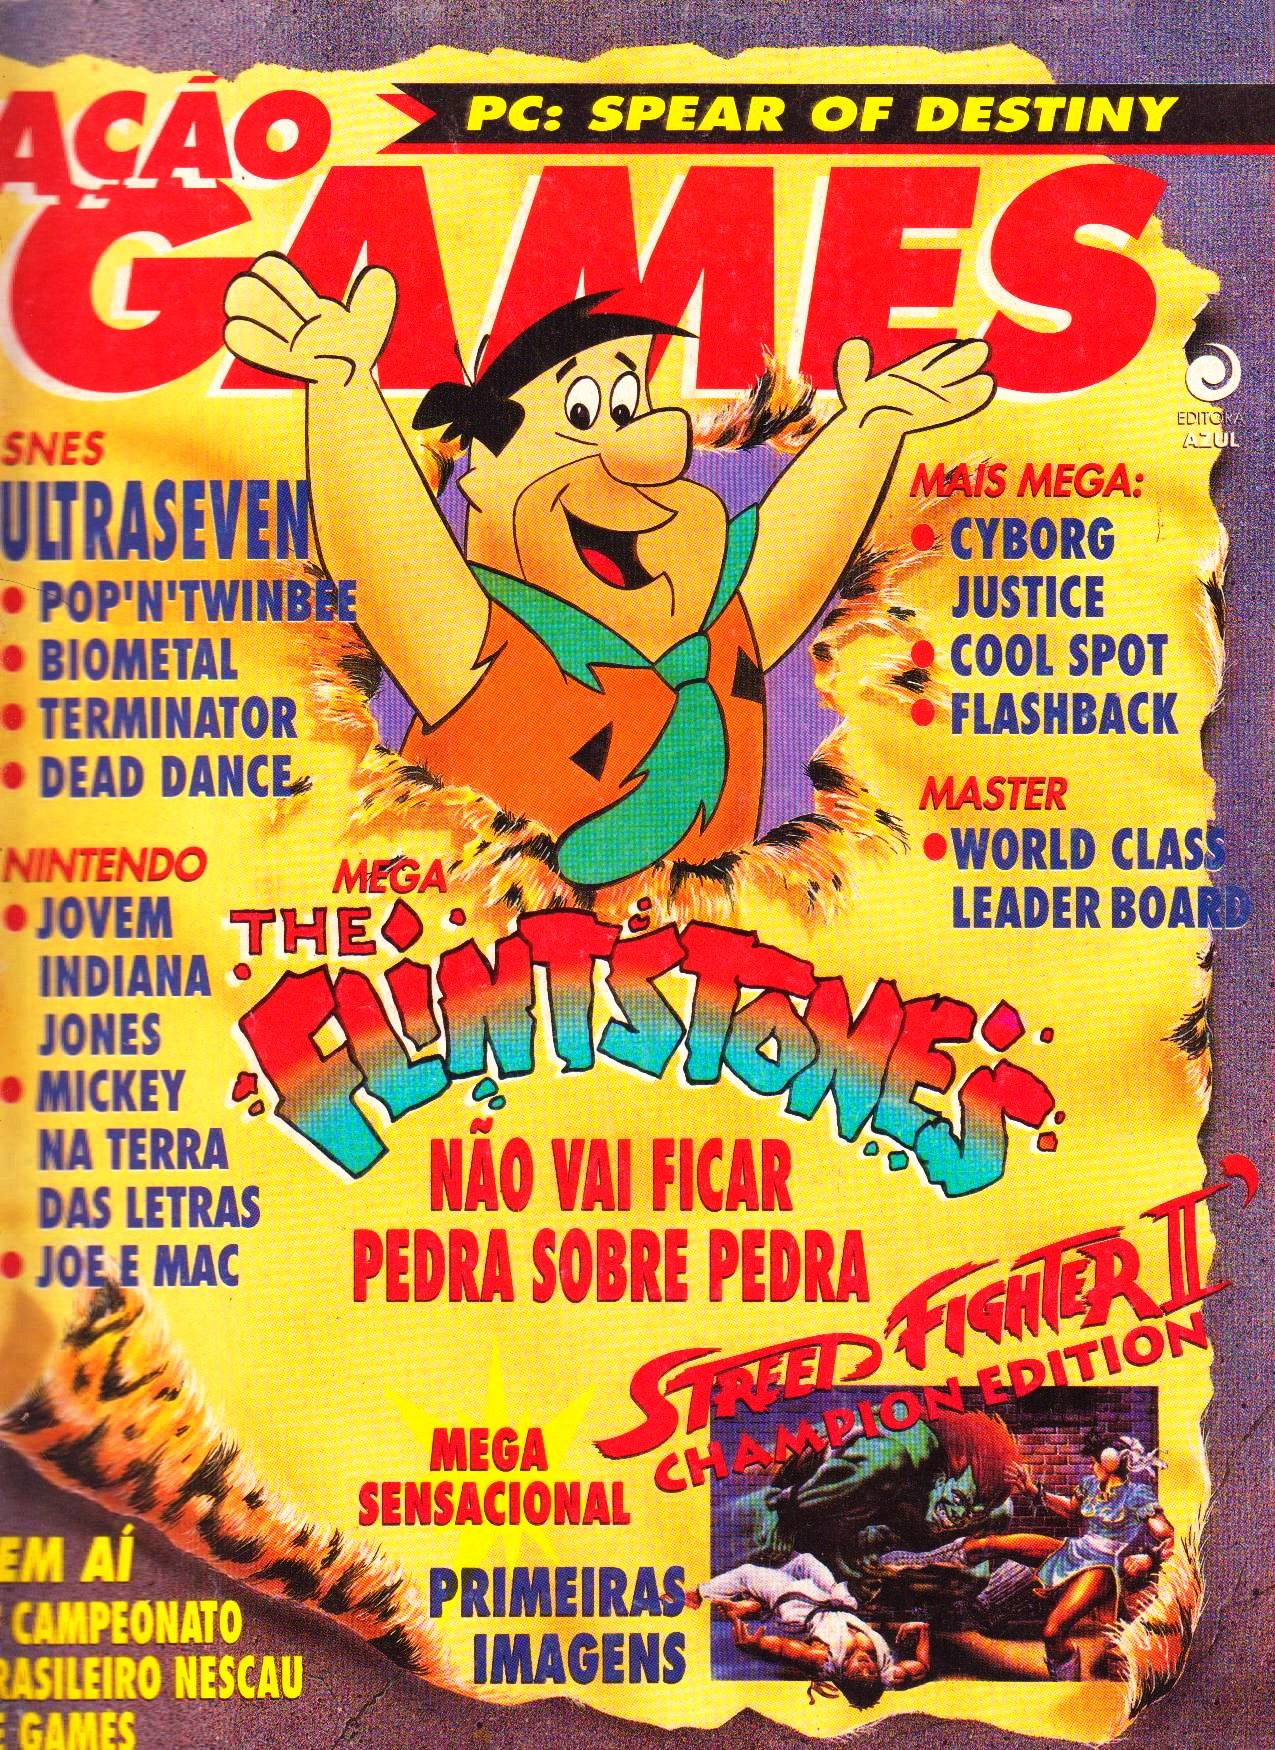 Acao Games Issue 034 (May 1993)